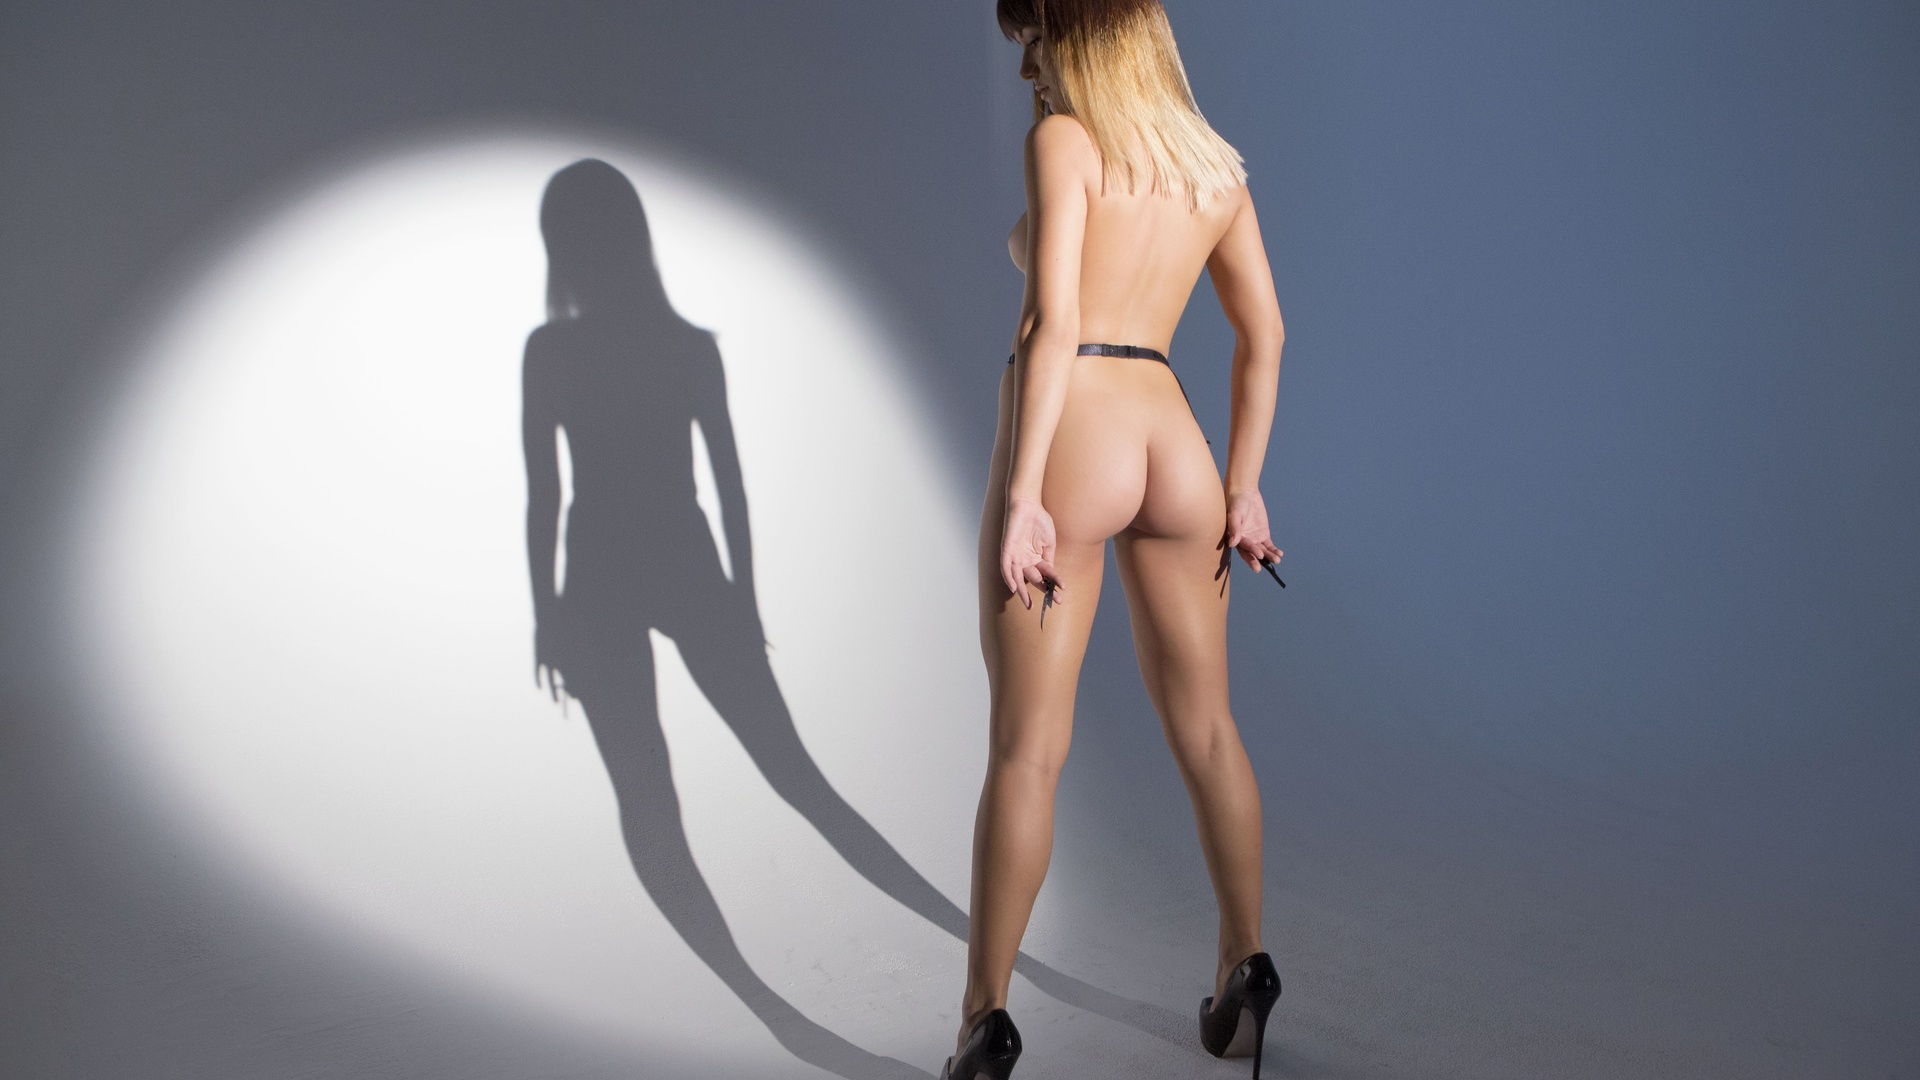 Nude girl shadow wallpaper exposed pics